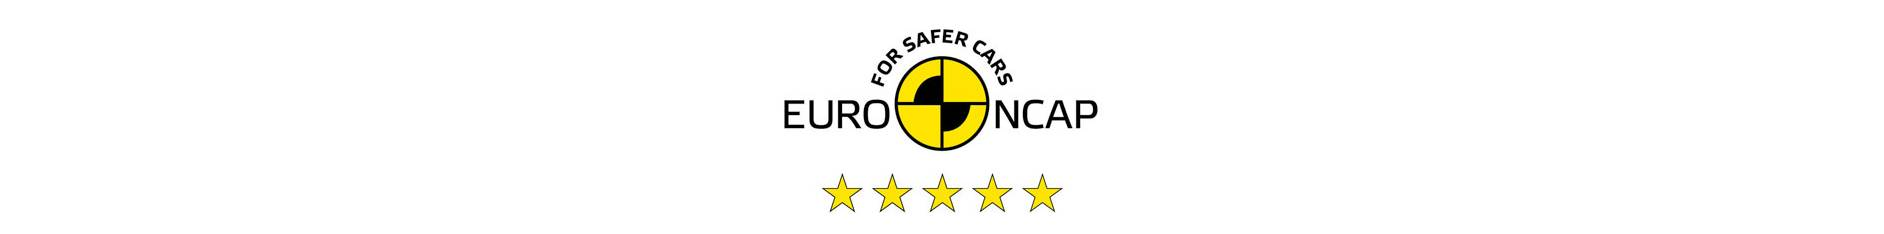 euro ncap star rating 1